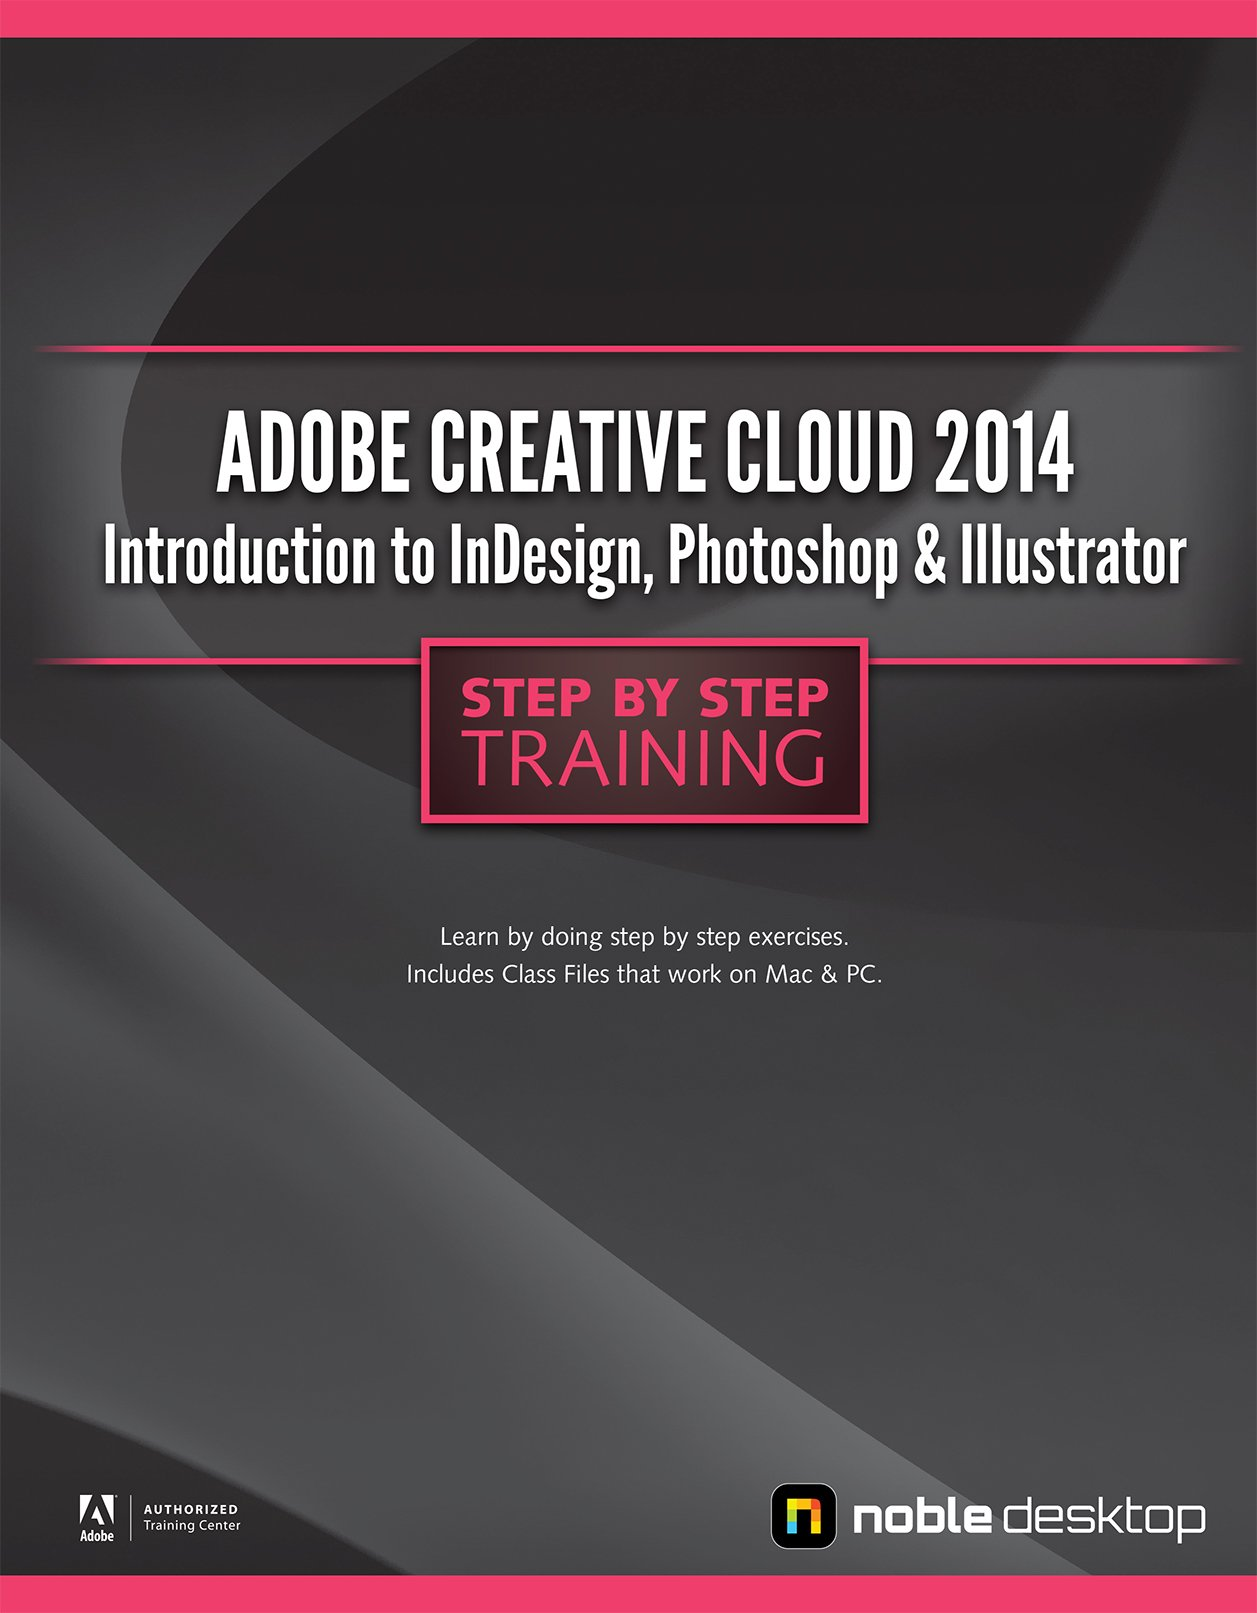 Download Adobe Creative Cloud 2014: Introduction to Indesign, Photoshop and Illustrator Step by Step Training PDF